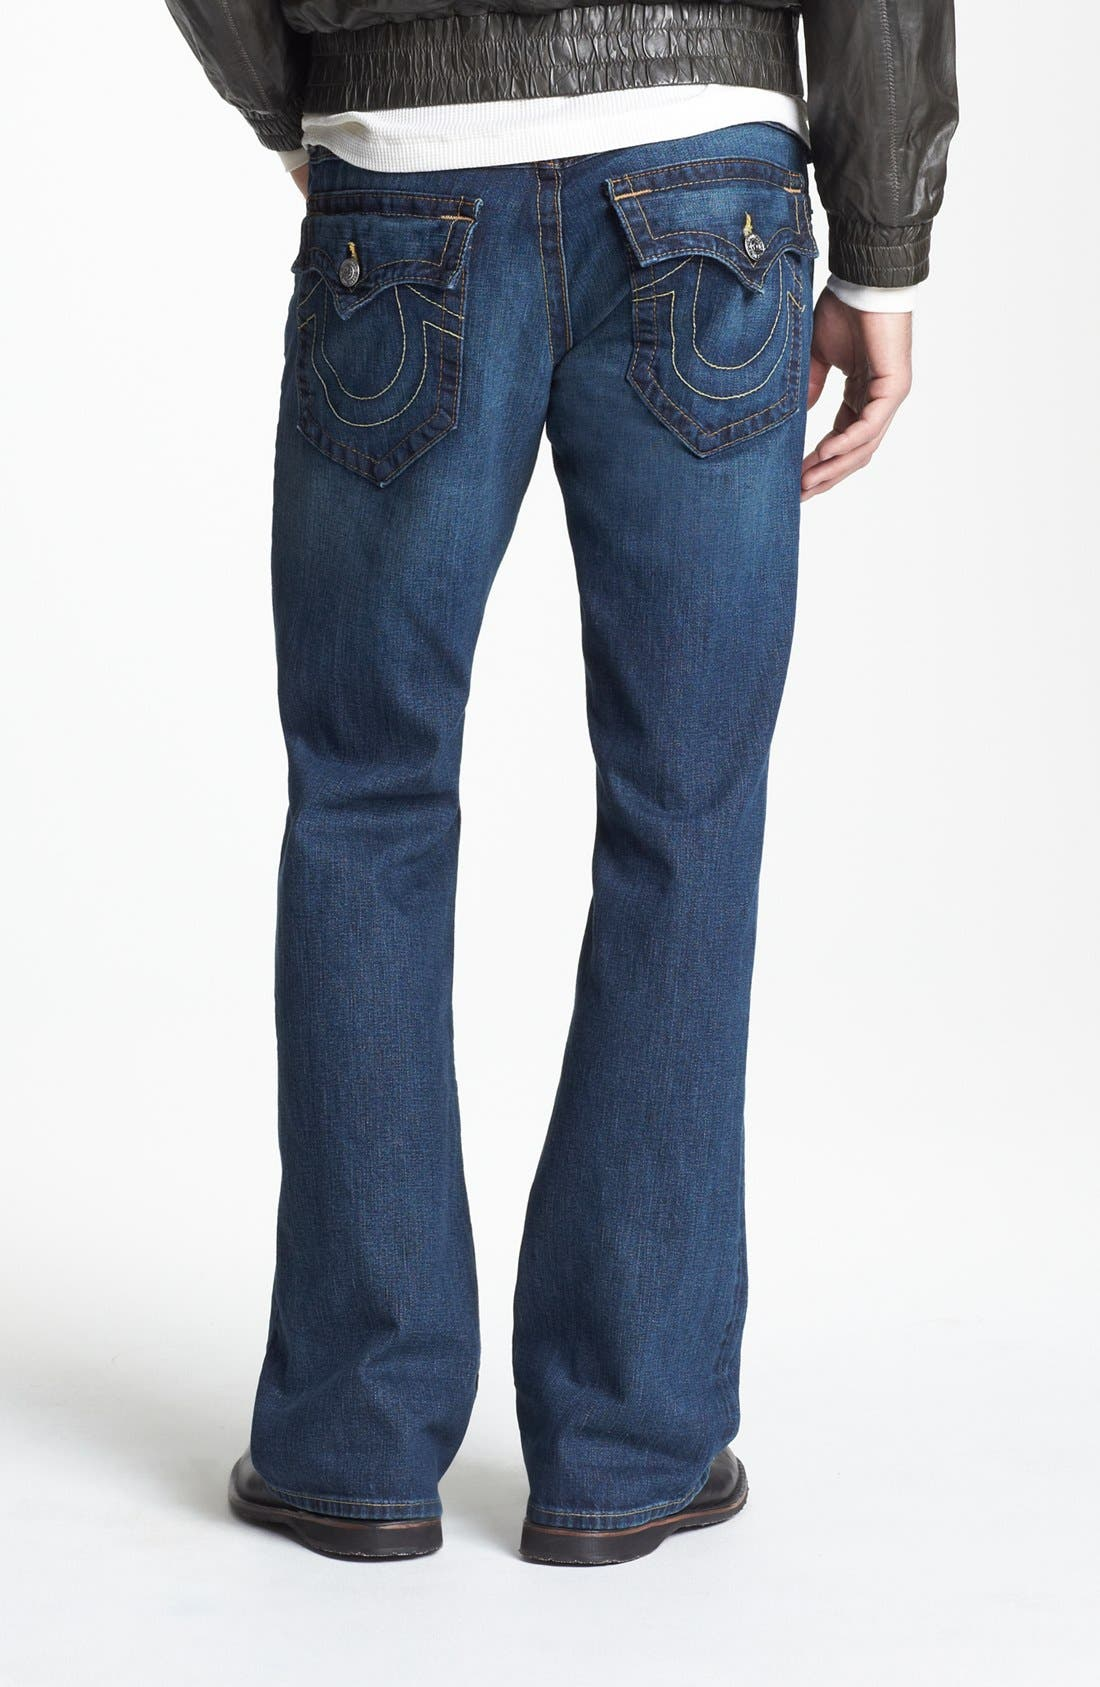 Alternate Image 1 Selected - True Religion Brand Jeans 'Billy' Bootcut Jeans (Monte)